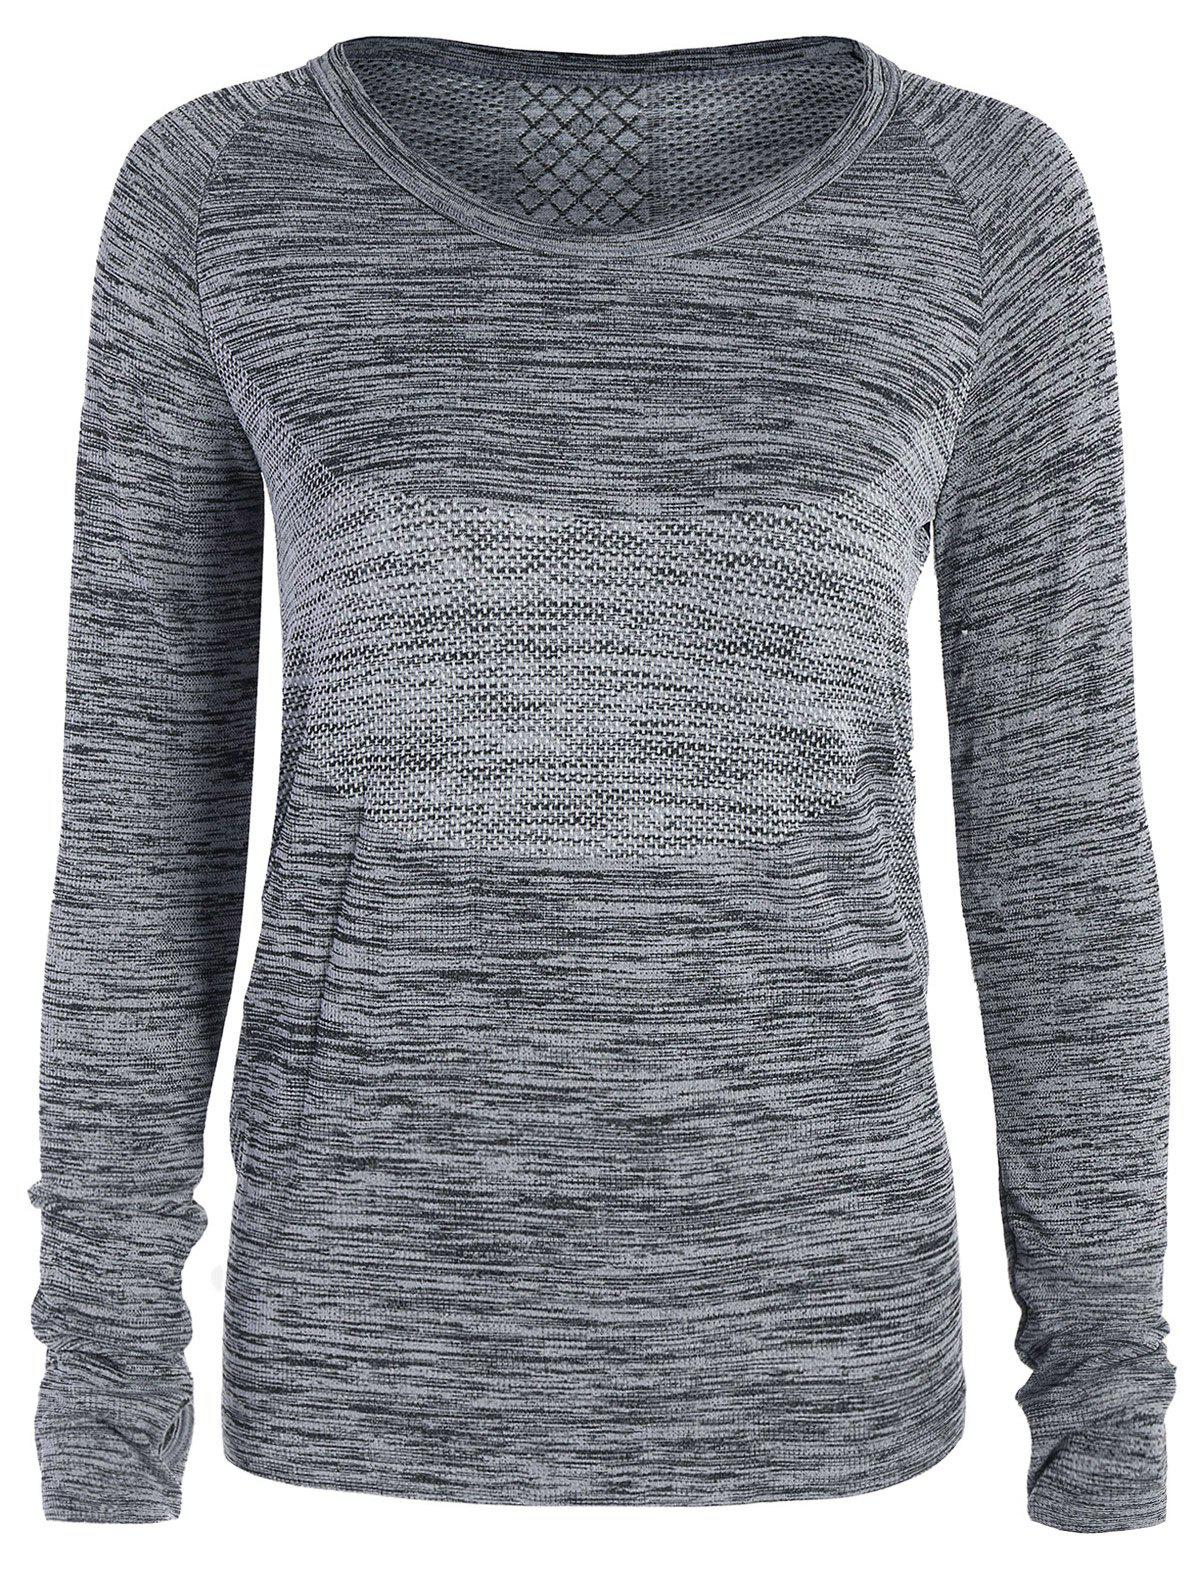 Heathered Thumbhole Long Sleeve Gym TopWOMEN<br><br>Size: L; Color: GRAY; Material: Nylon,Polyester,Spandex; Shirt Length: Regular; Sleeve Length: Full; Collar: Round Neck; Pattern Type: Others; Weight: 0.2070kg; Package Contents: 1 x Tee;